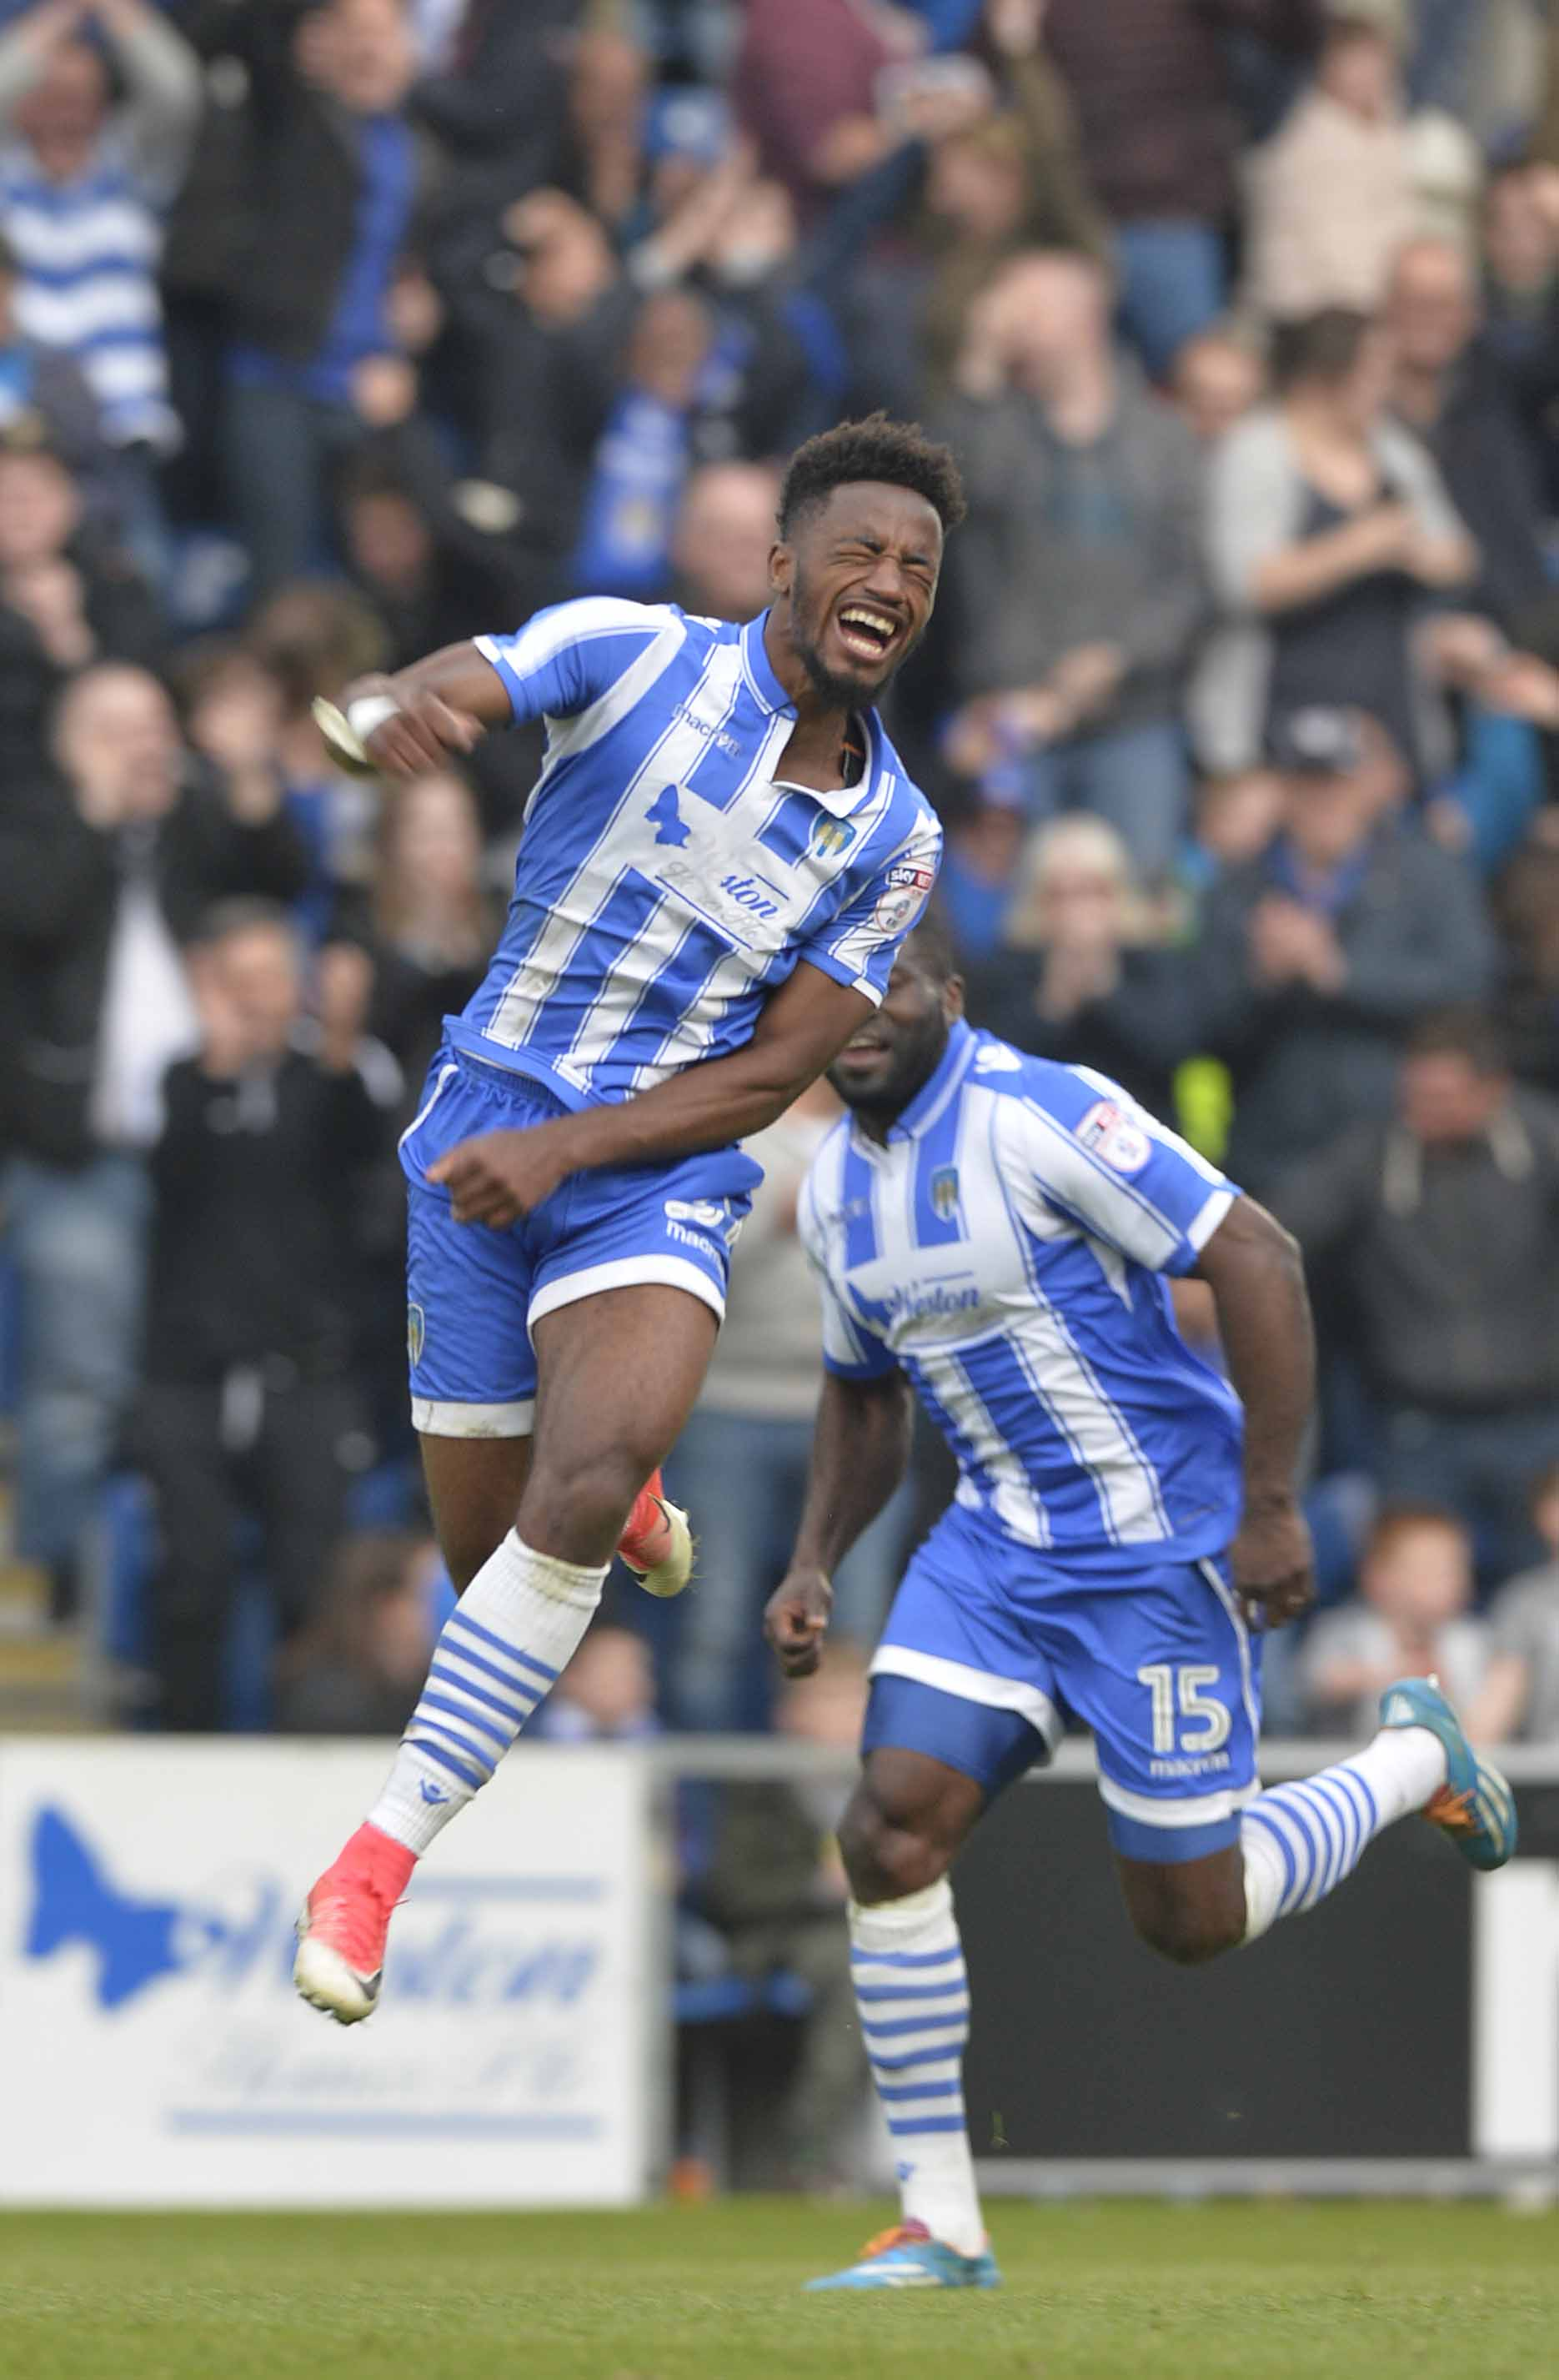 On the up - Tarique Fosu celebrates the second of his two goals for Colchester United against Yeovil Town on the final day of the League Two season. Picture: STEVE BRADING